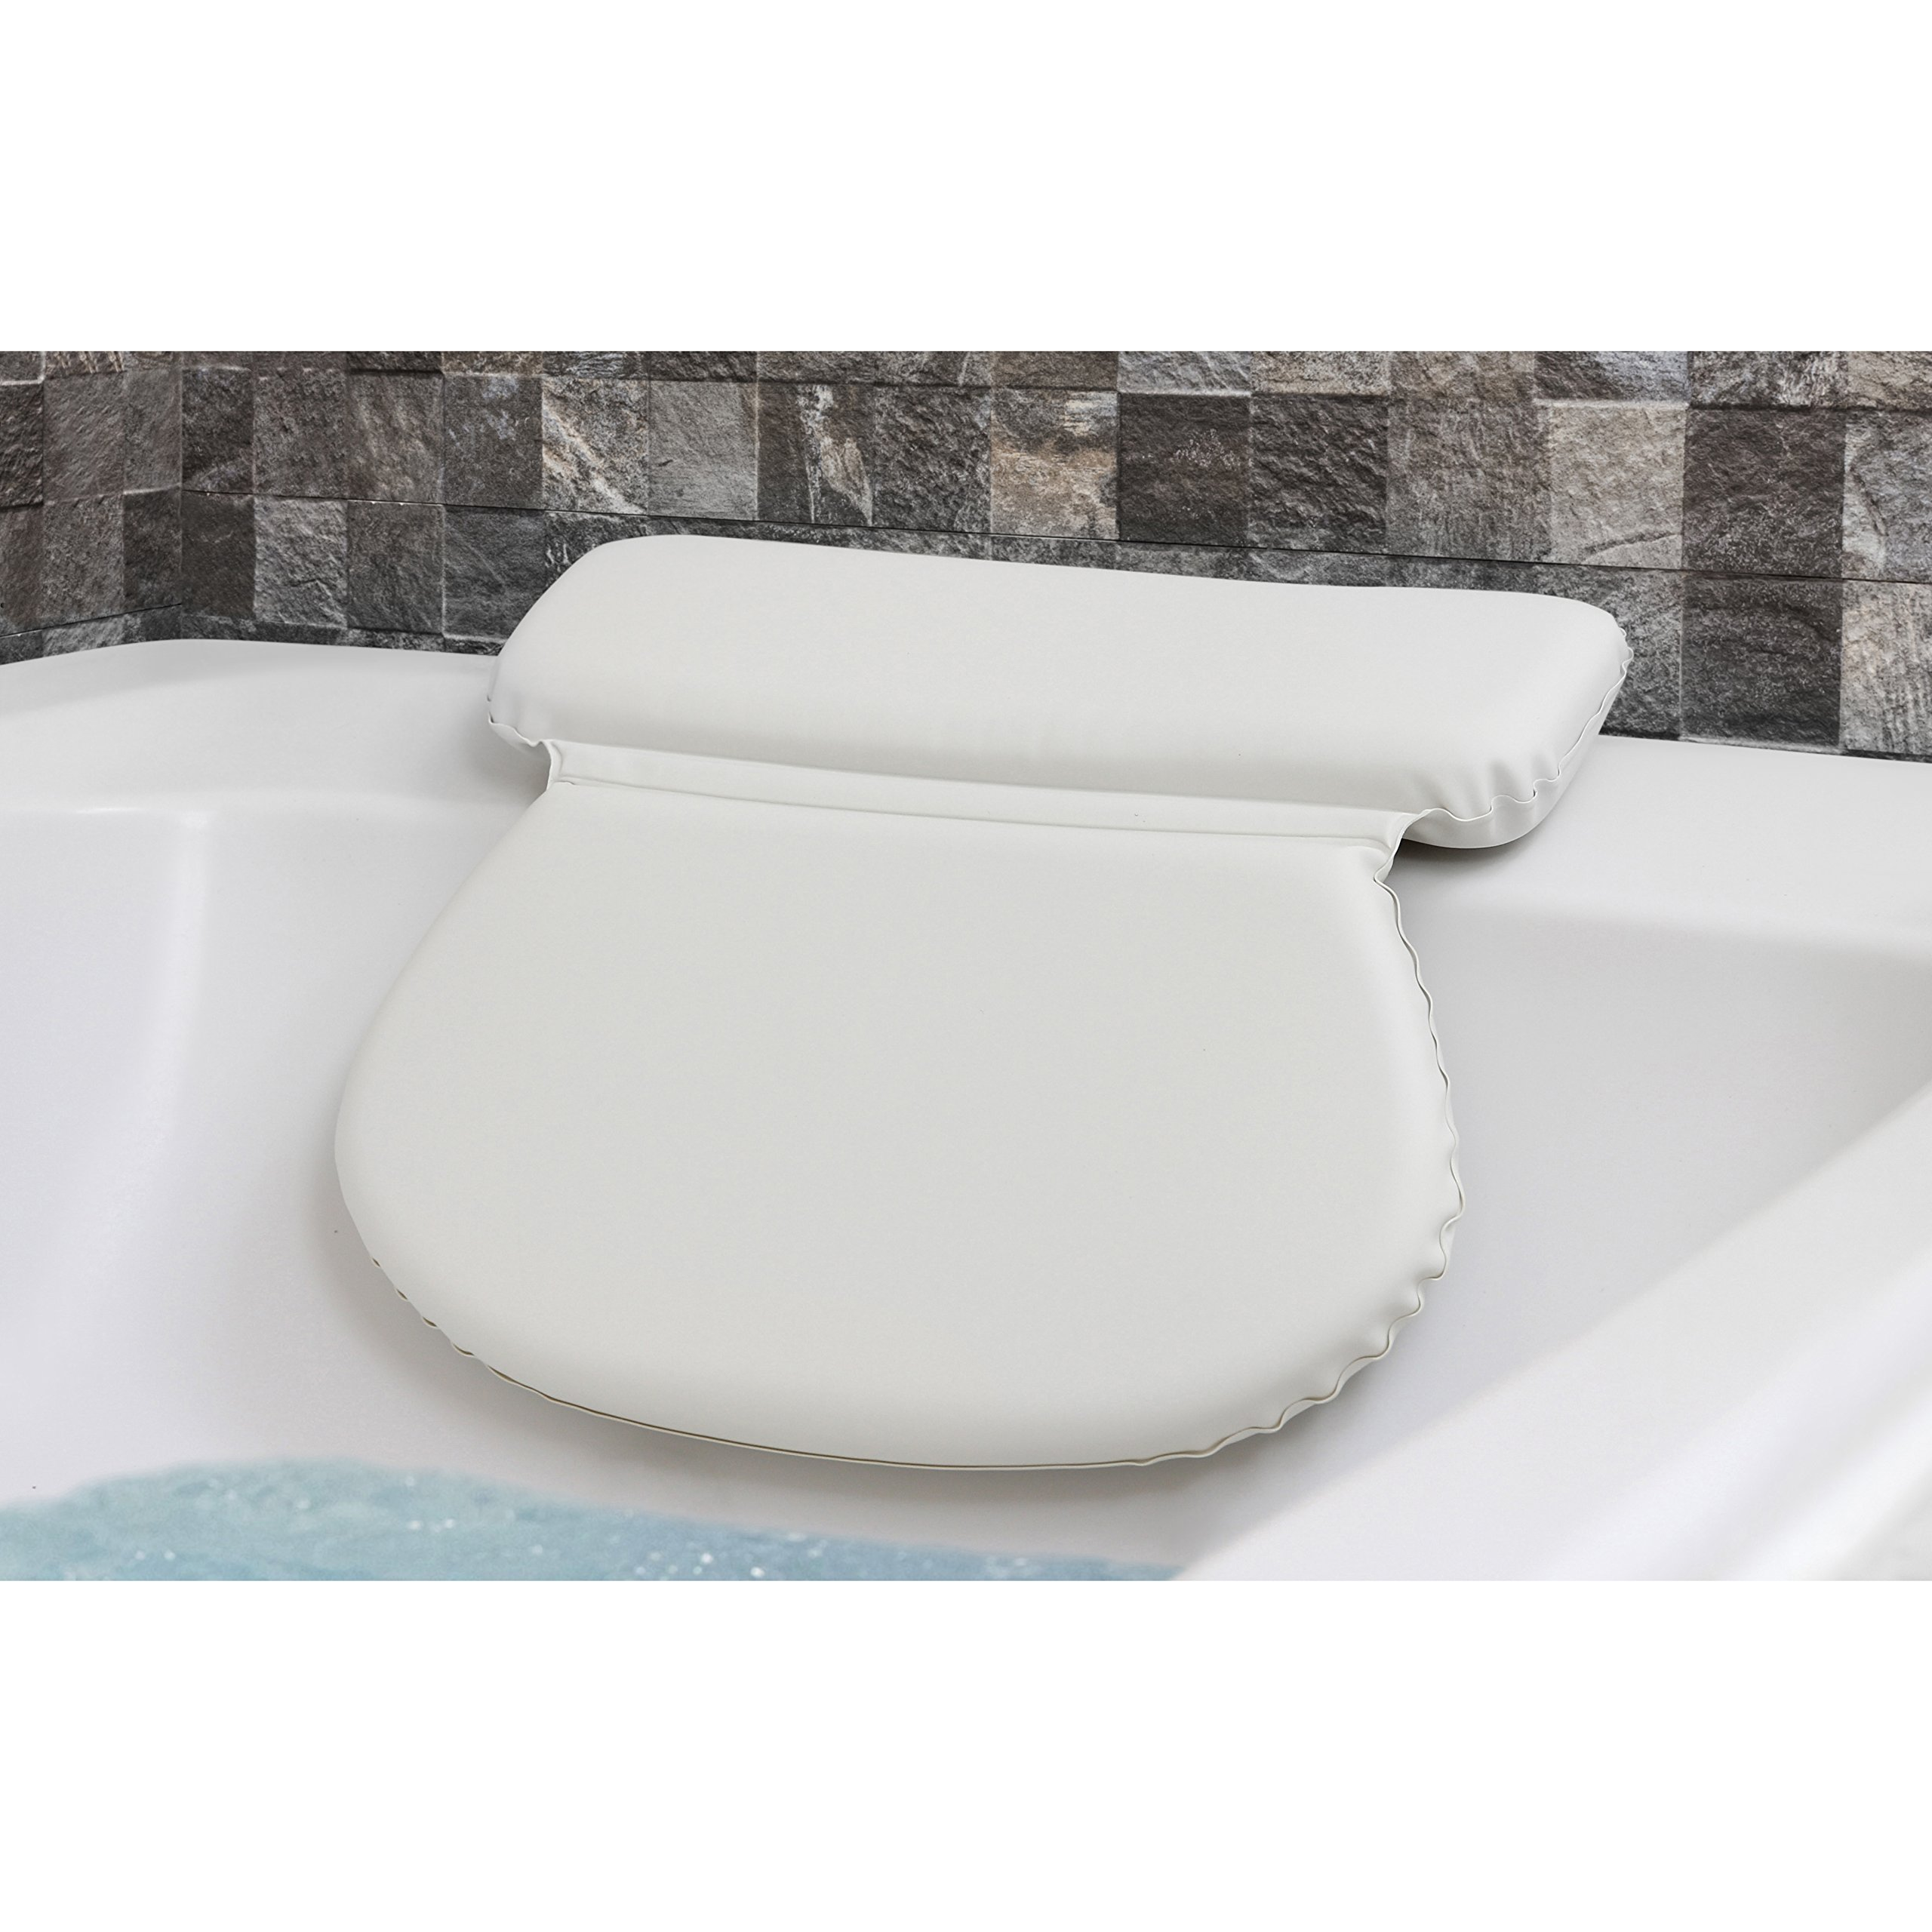 Amazon.com: HoMedics JET-1 Jet Spa Whirlpool Spa: Health & Personal Care